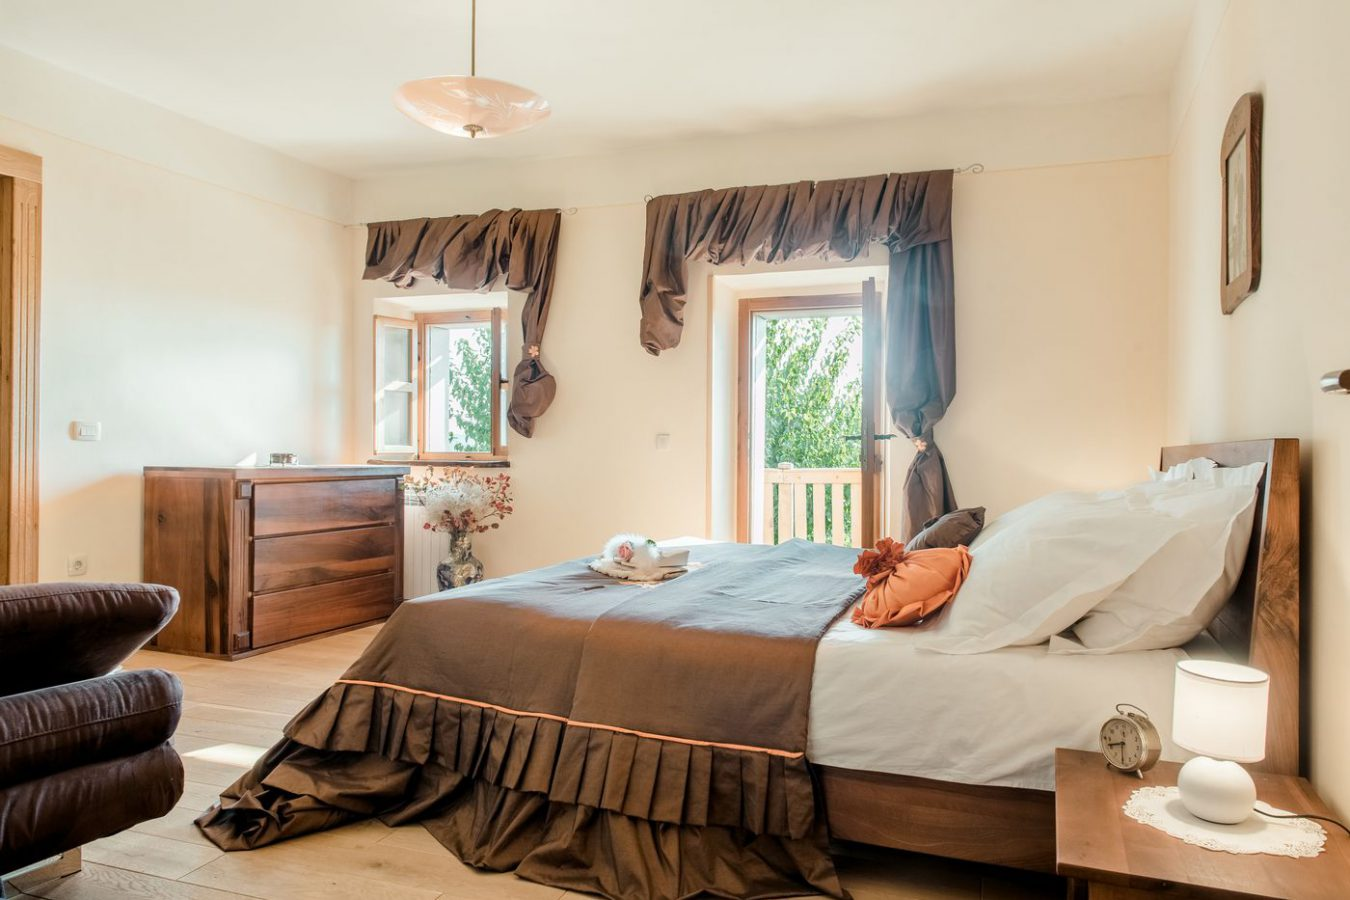 Superior Room Asa Residence Private Villa Kras Slovenia